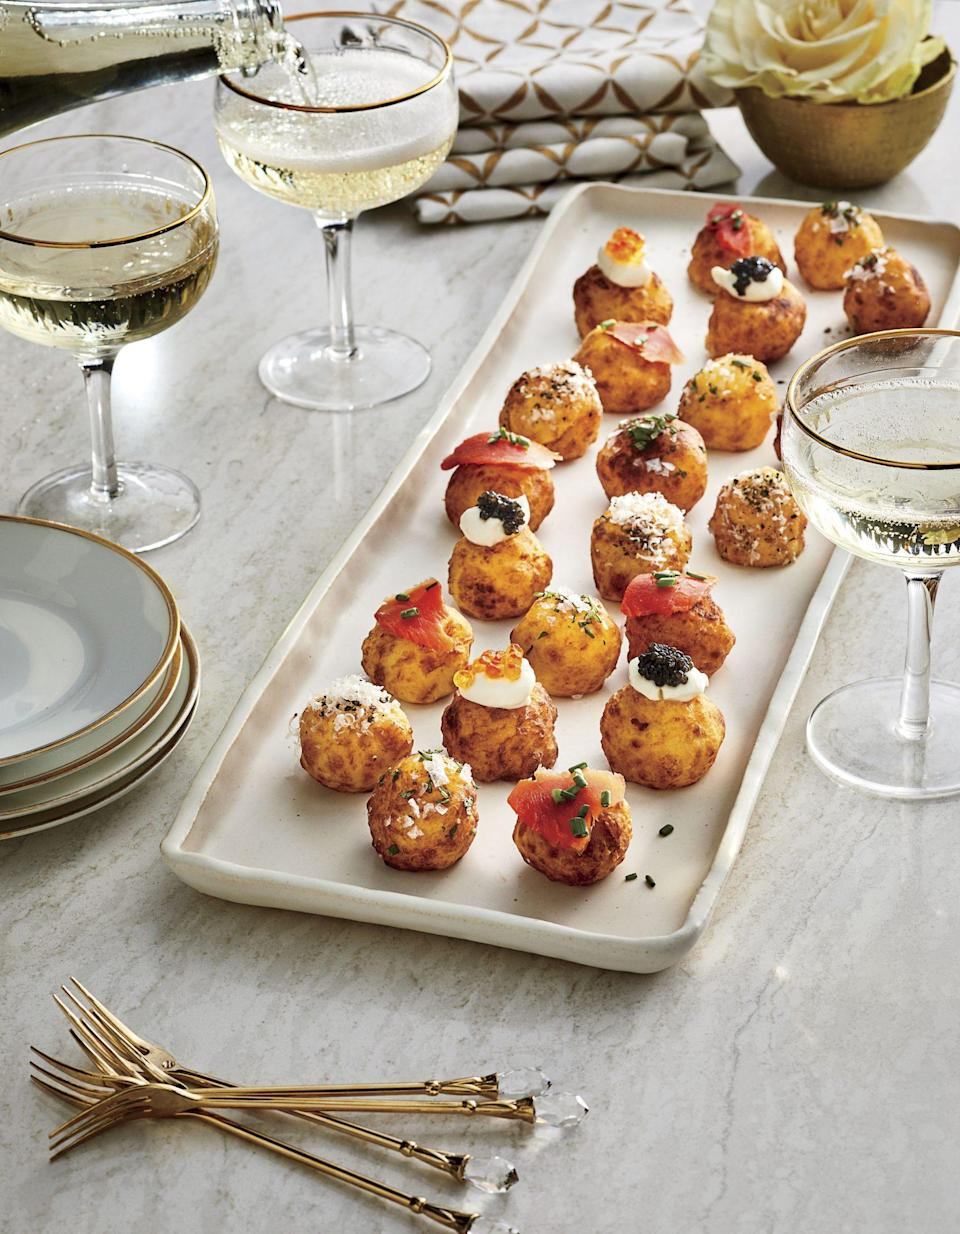 """<p><strong>Recipe: <a href=""""https://www.southernliving.com/recipes/potato-puffs"""" rel=""""nofollow noopener"""" target=""""_blank"""" data-ylk=""""slk:Potato Puffs with Toppings"""" class=""""link rapid-noclick-resp"""">Potato Puffs with Toppings</a></strong></p> <p>Think of these potato puffs as a party-ready version of tater tots. </p>"""